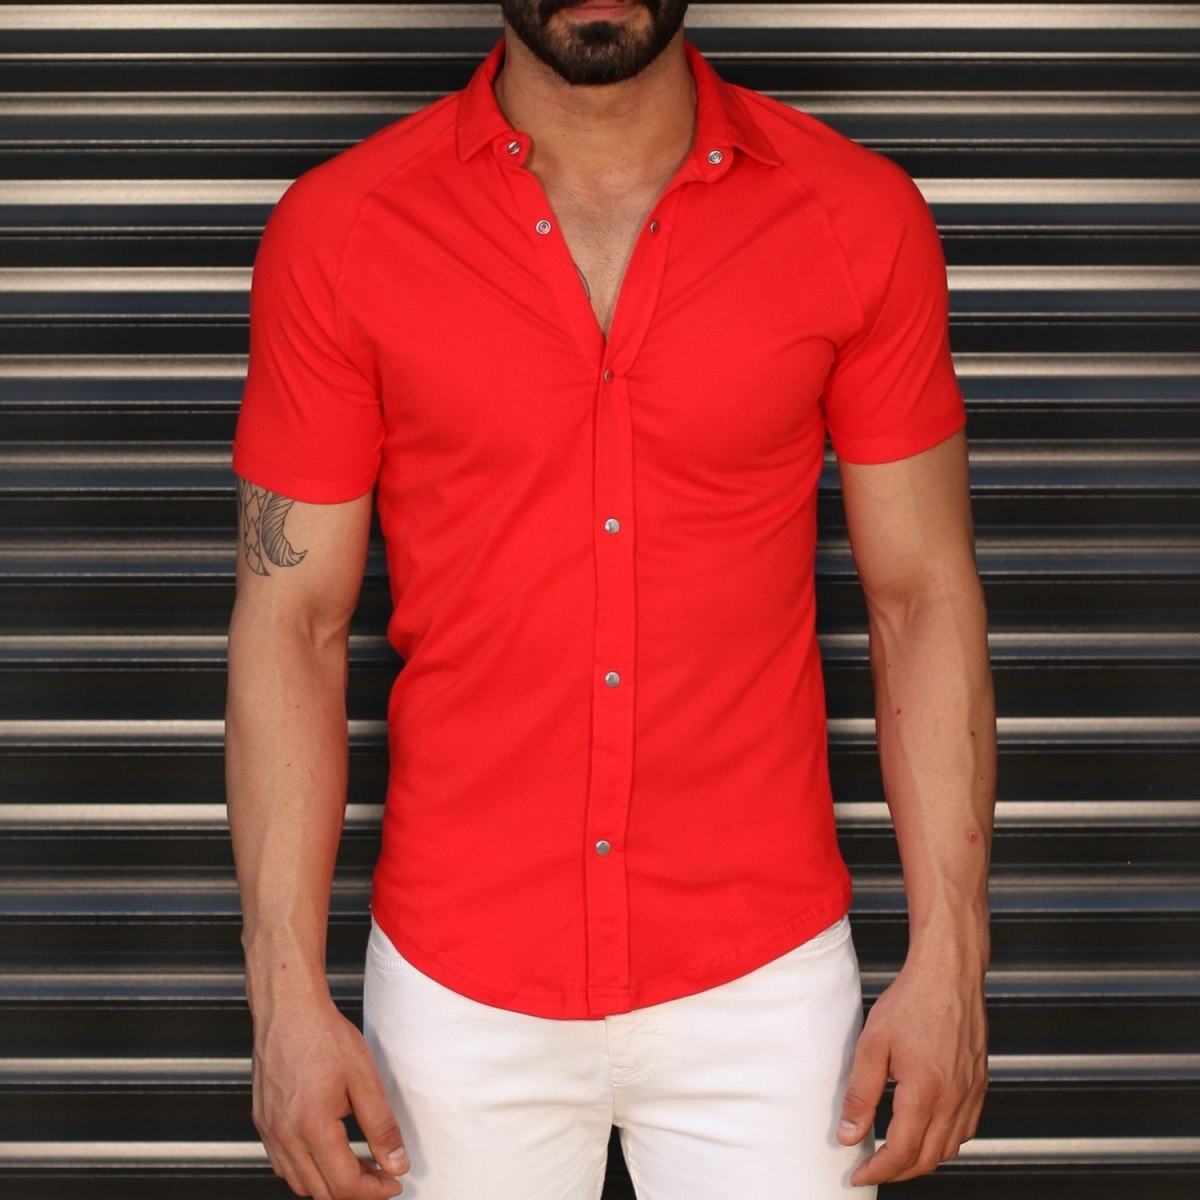 Men's Button Short Sleeve Muscle Fit Shirt In Red